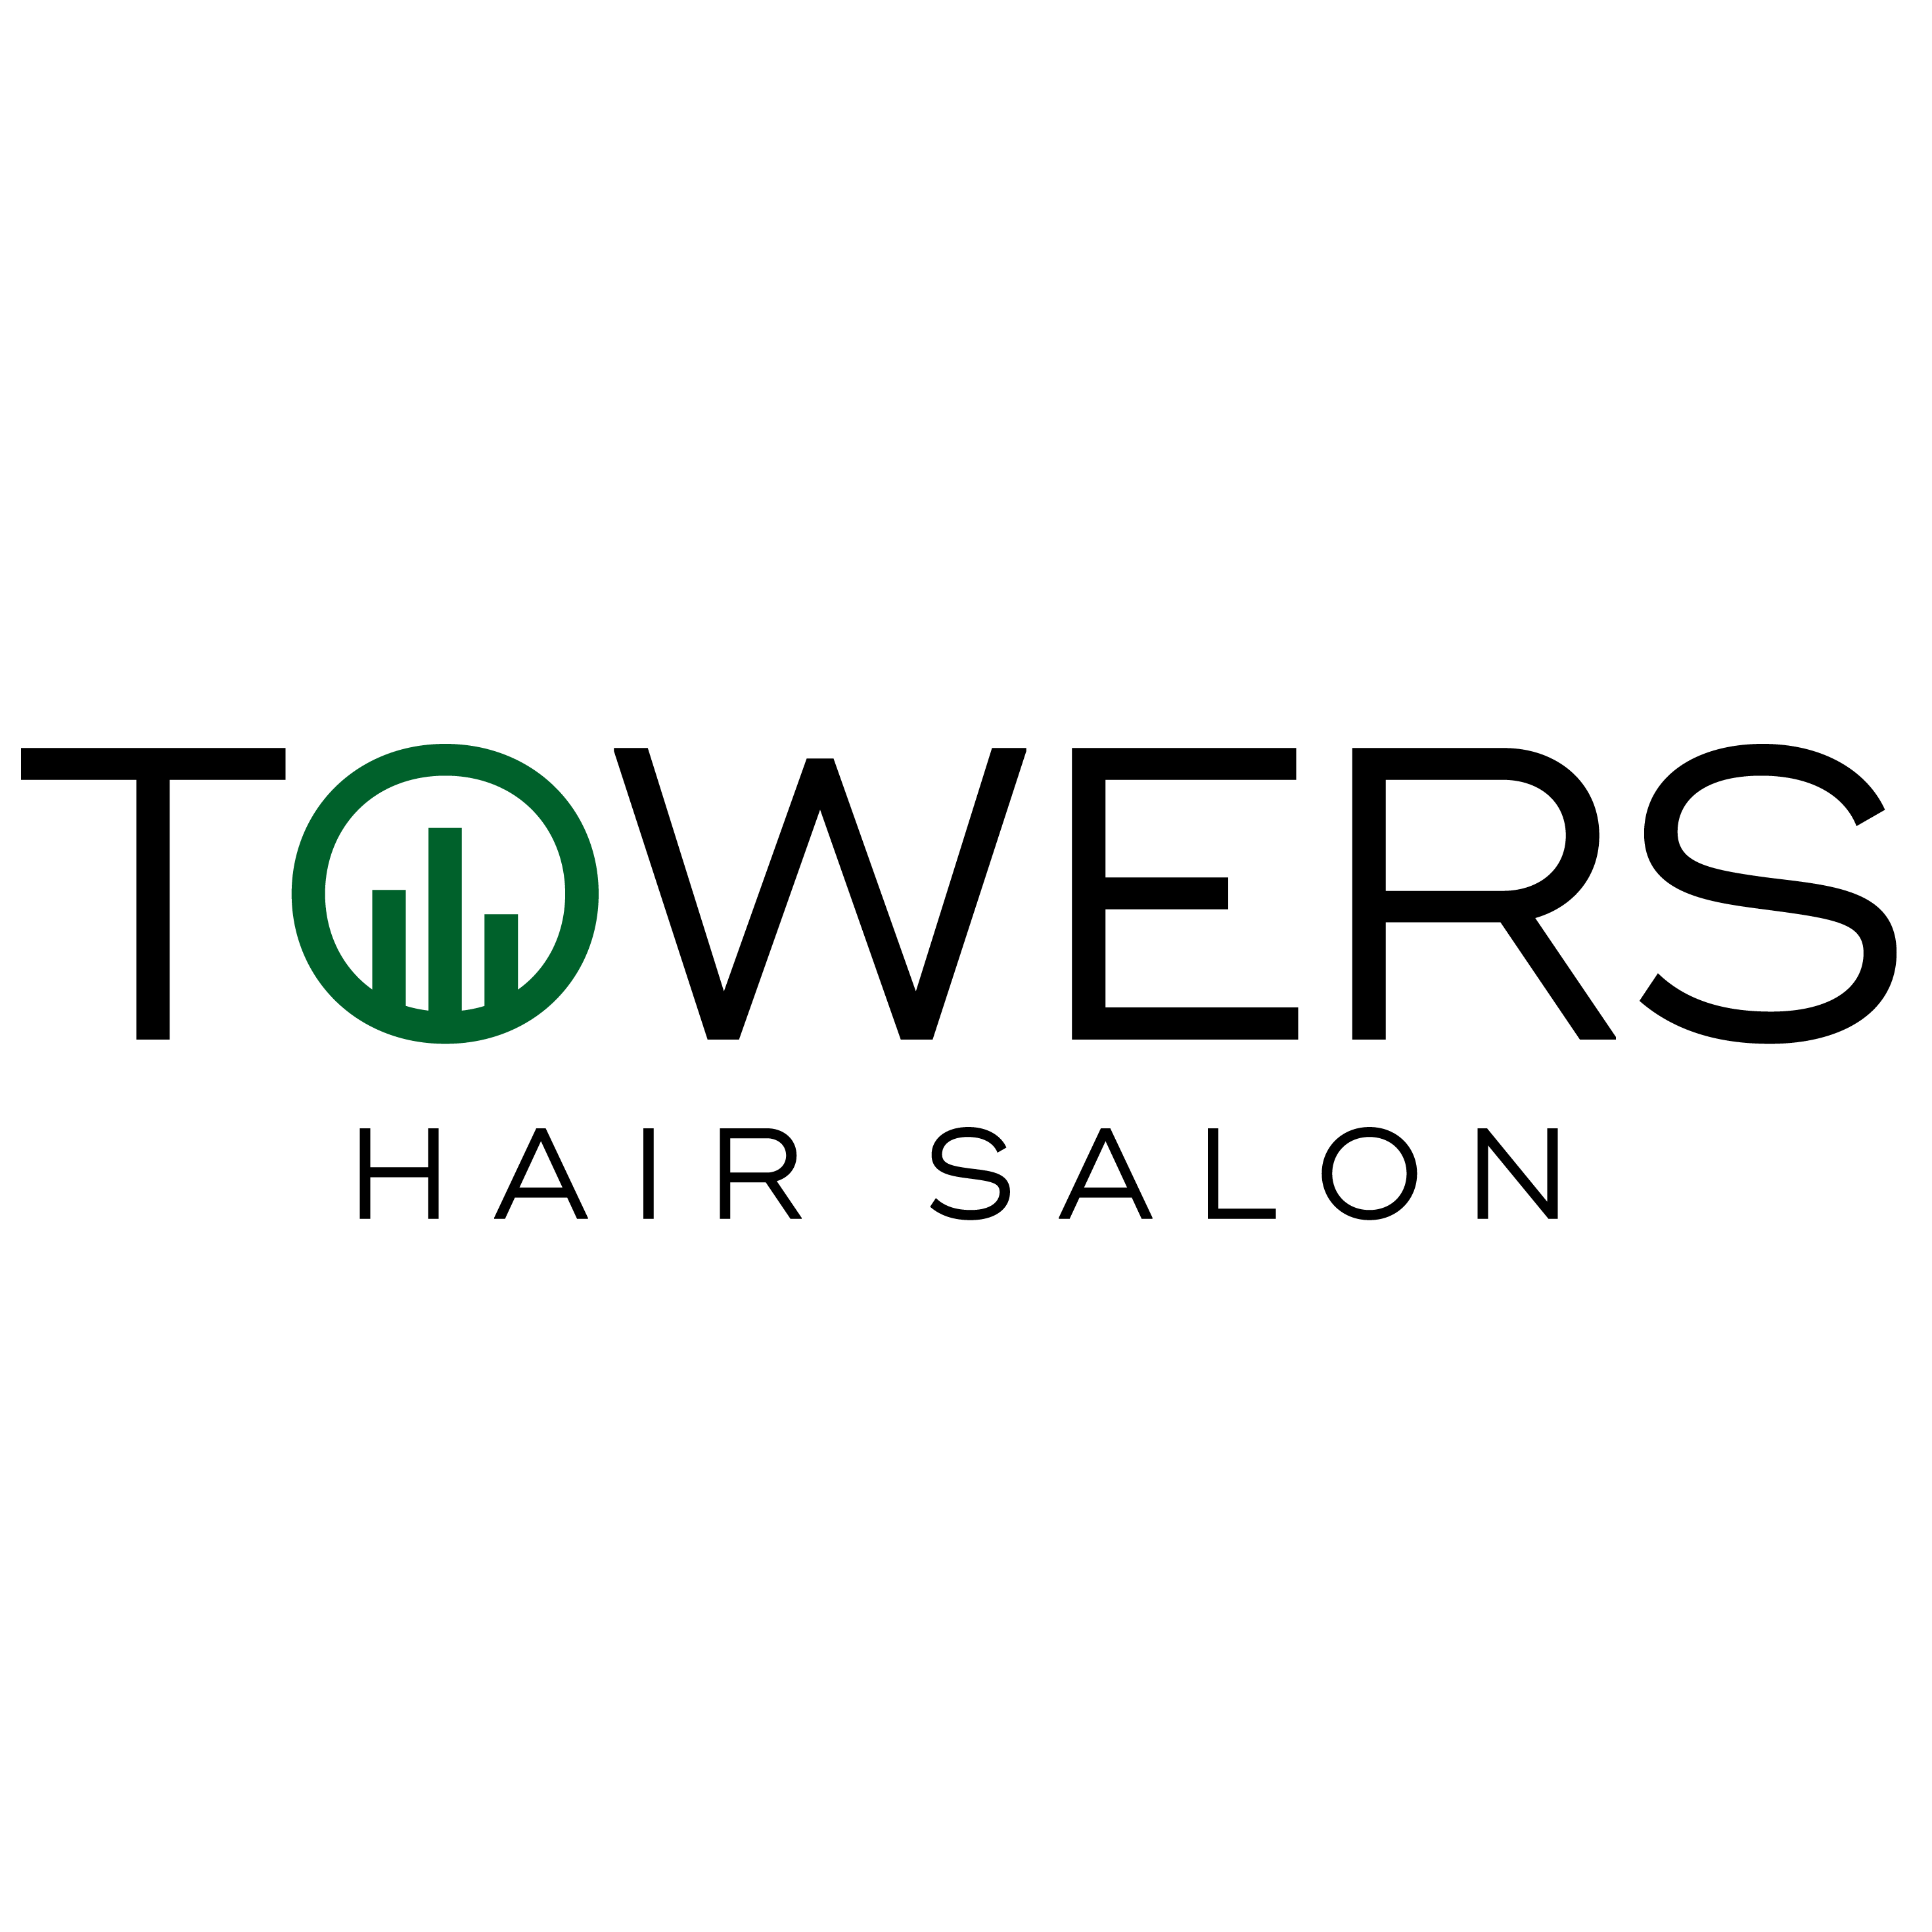 Towers Hair Design - Lakeland, FL 33813 - (863)940-2822 | ShowMeLocal.com